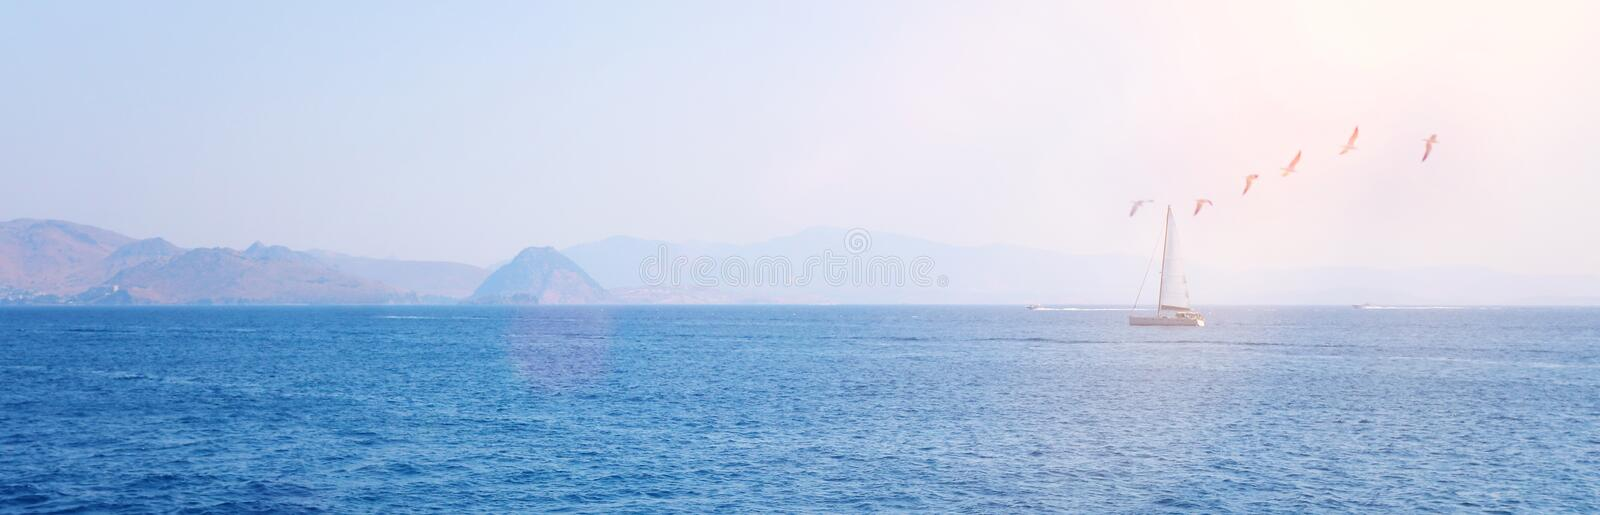 Parks/Outdoor image of Sailboat in the beautiful Mediterranean sea at the sunlight. banner.  stock photo